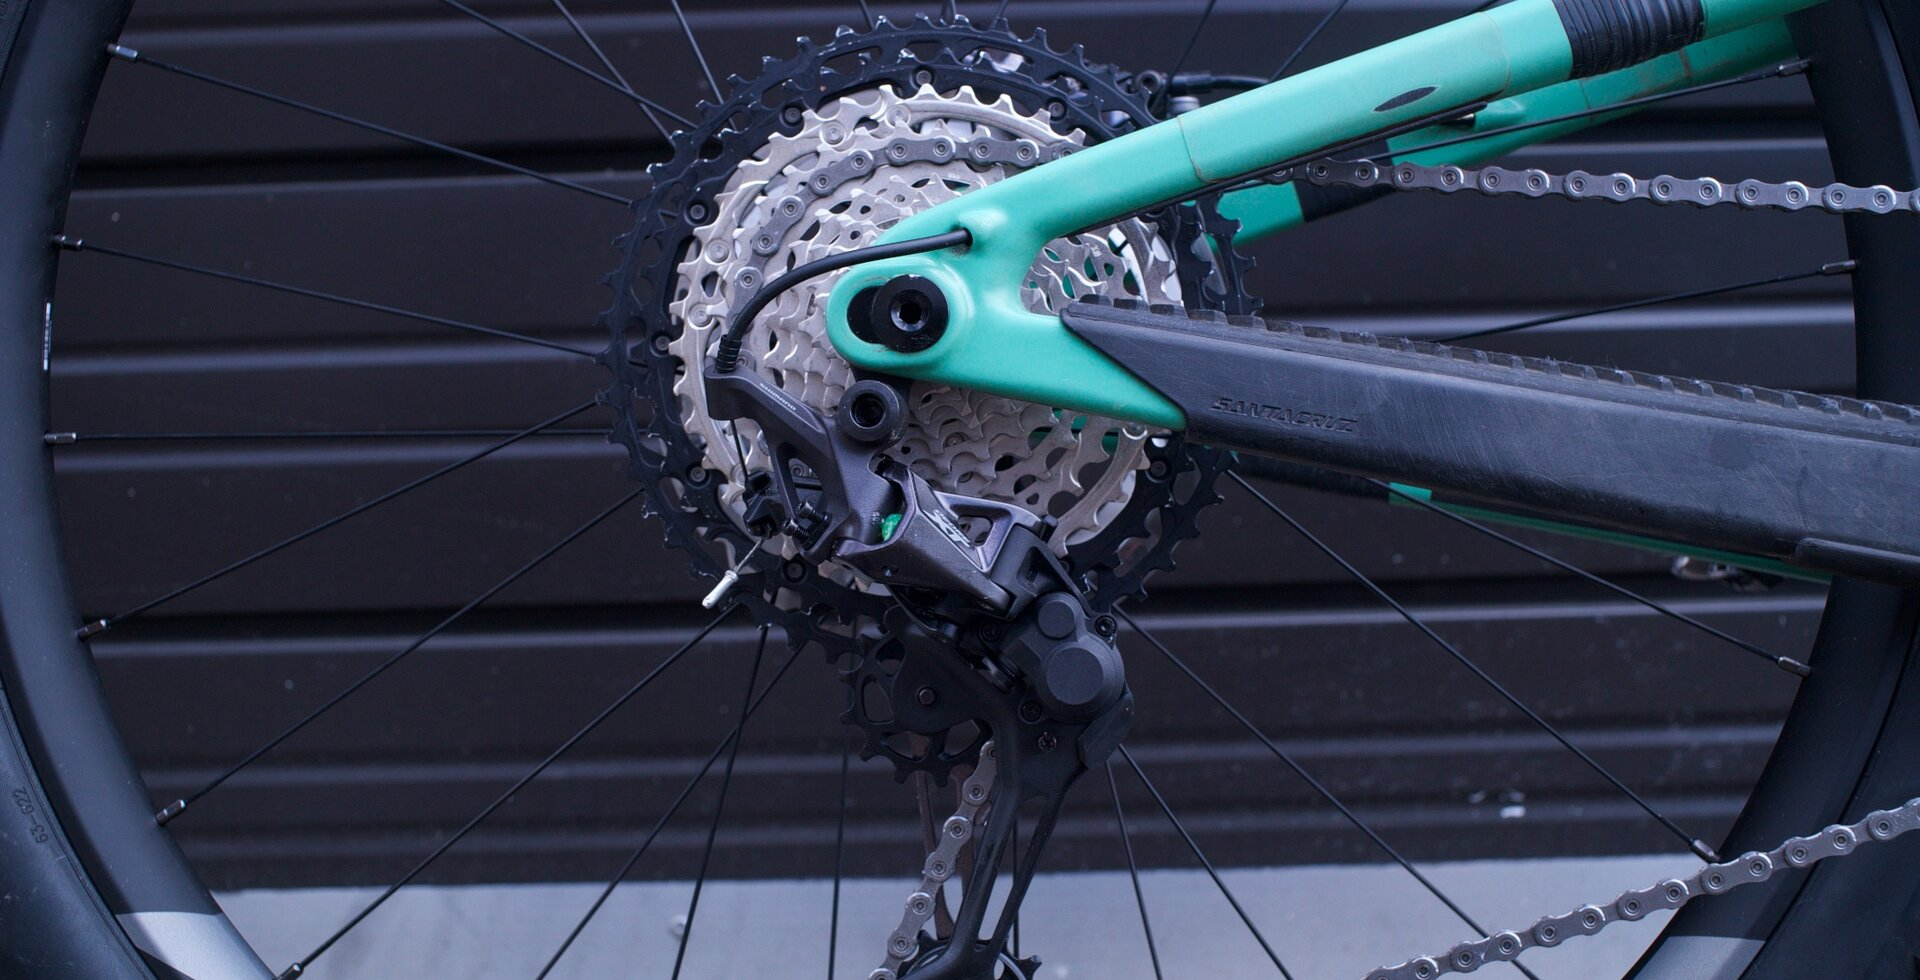 The original MTB group continues its legacy with increased durability and performance to meet the needs of modern mountain bike riders.